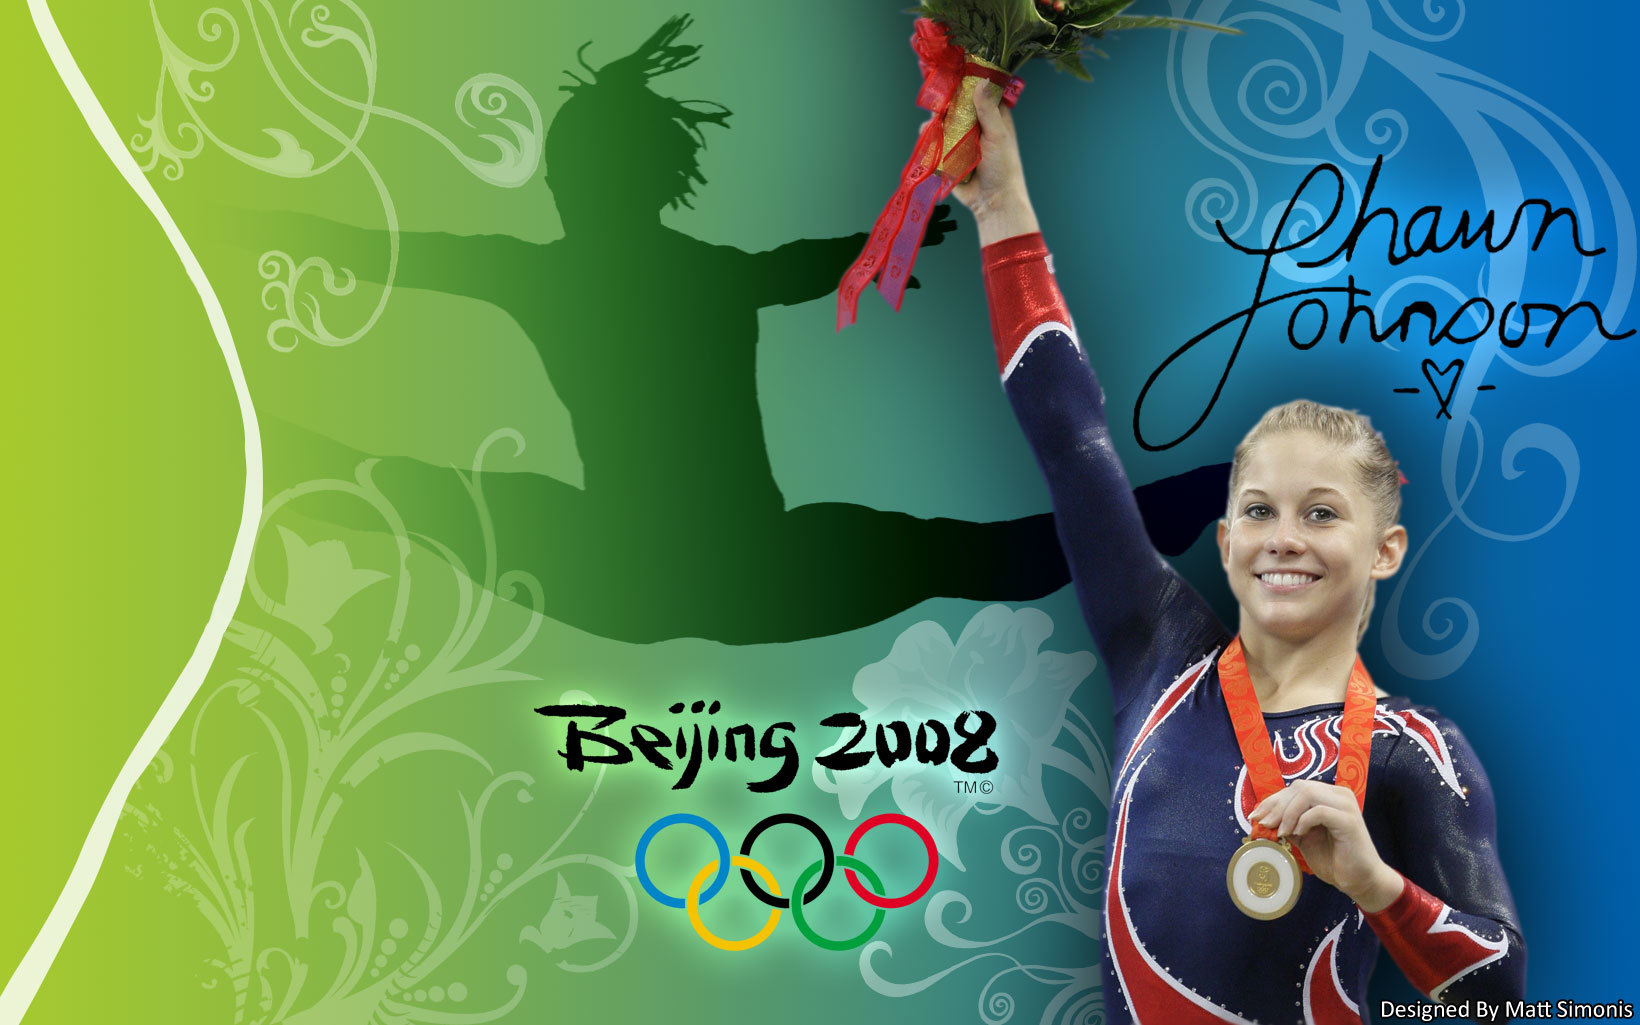 shawn johnson American artistic HD Wallpaper